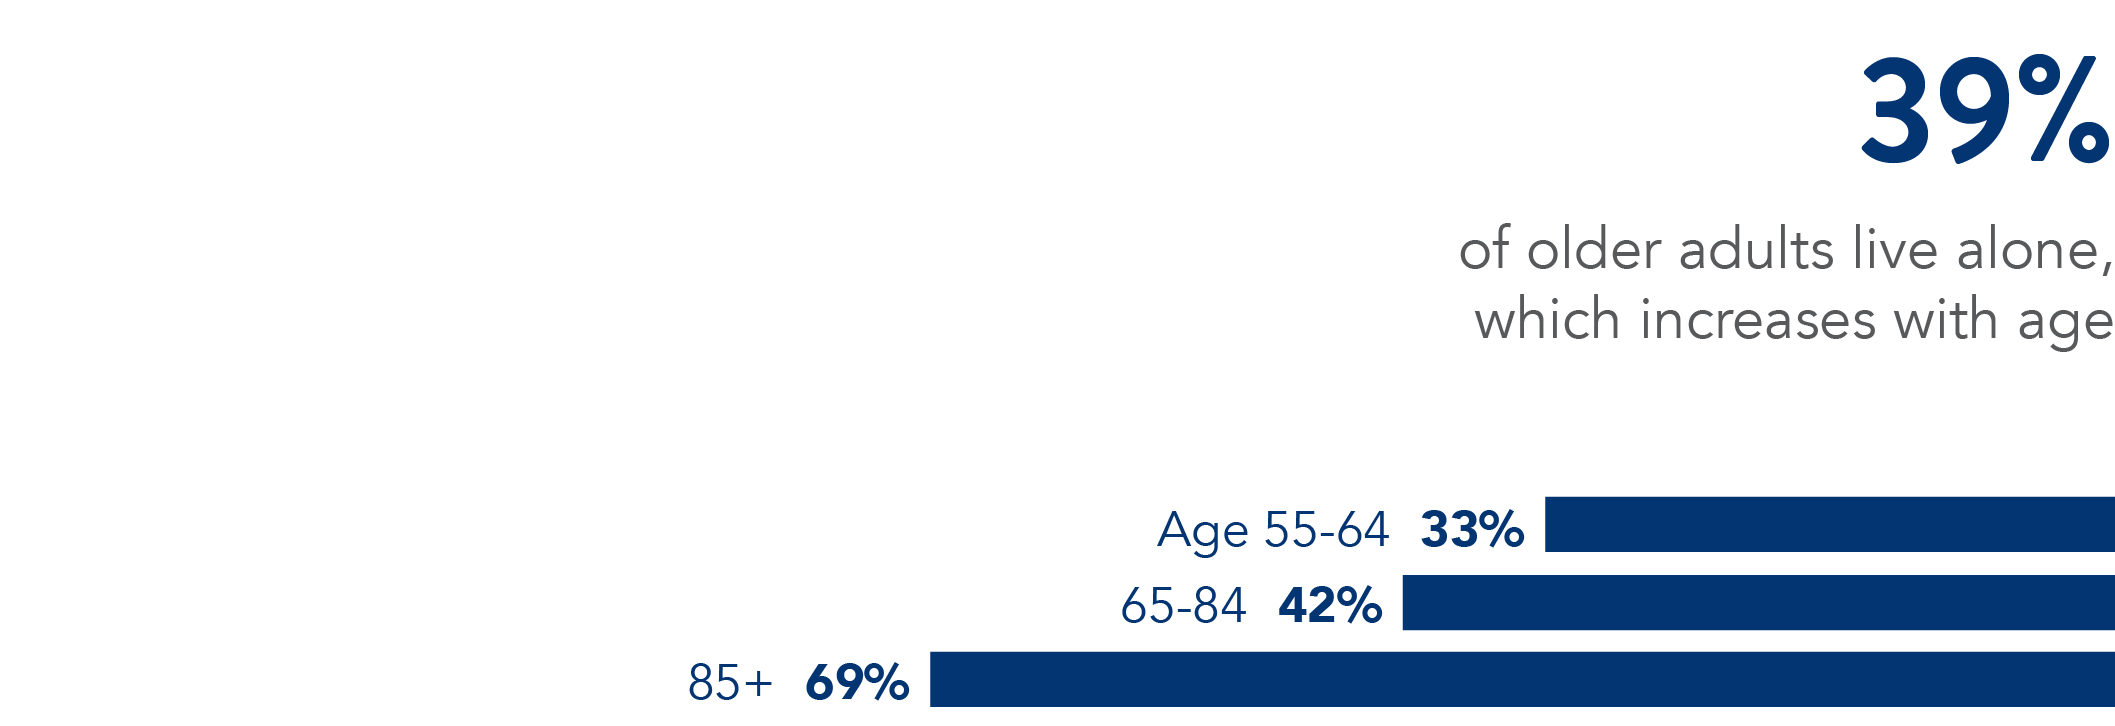 24% of older adults live alone, but living alone is more common  with age